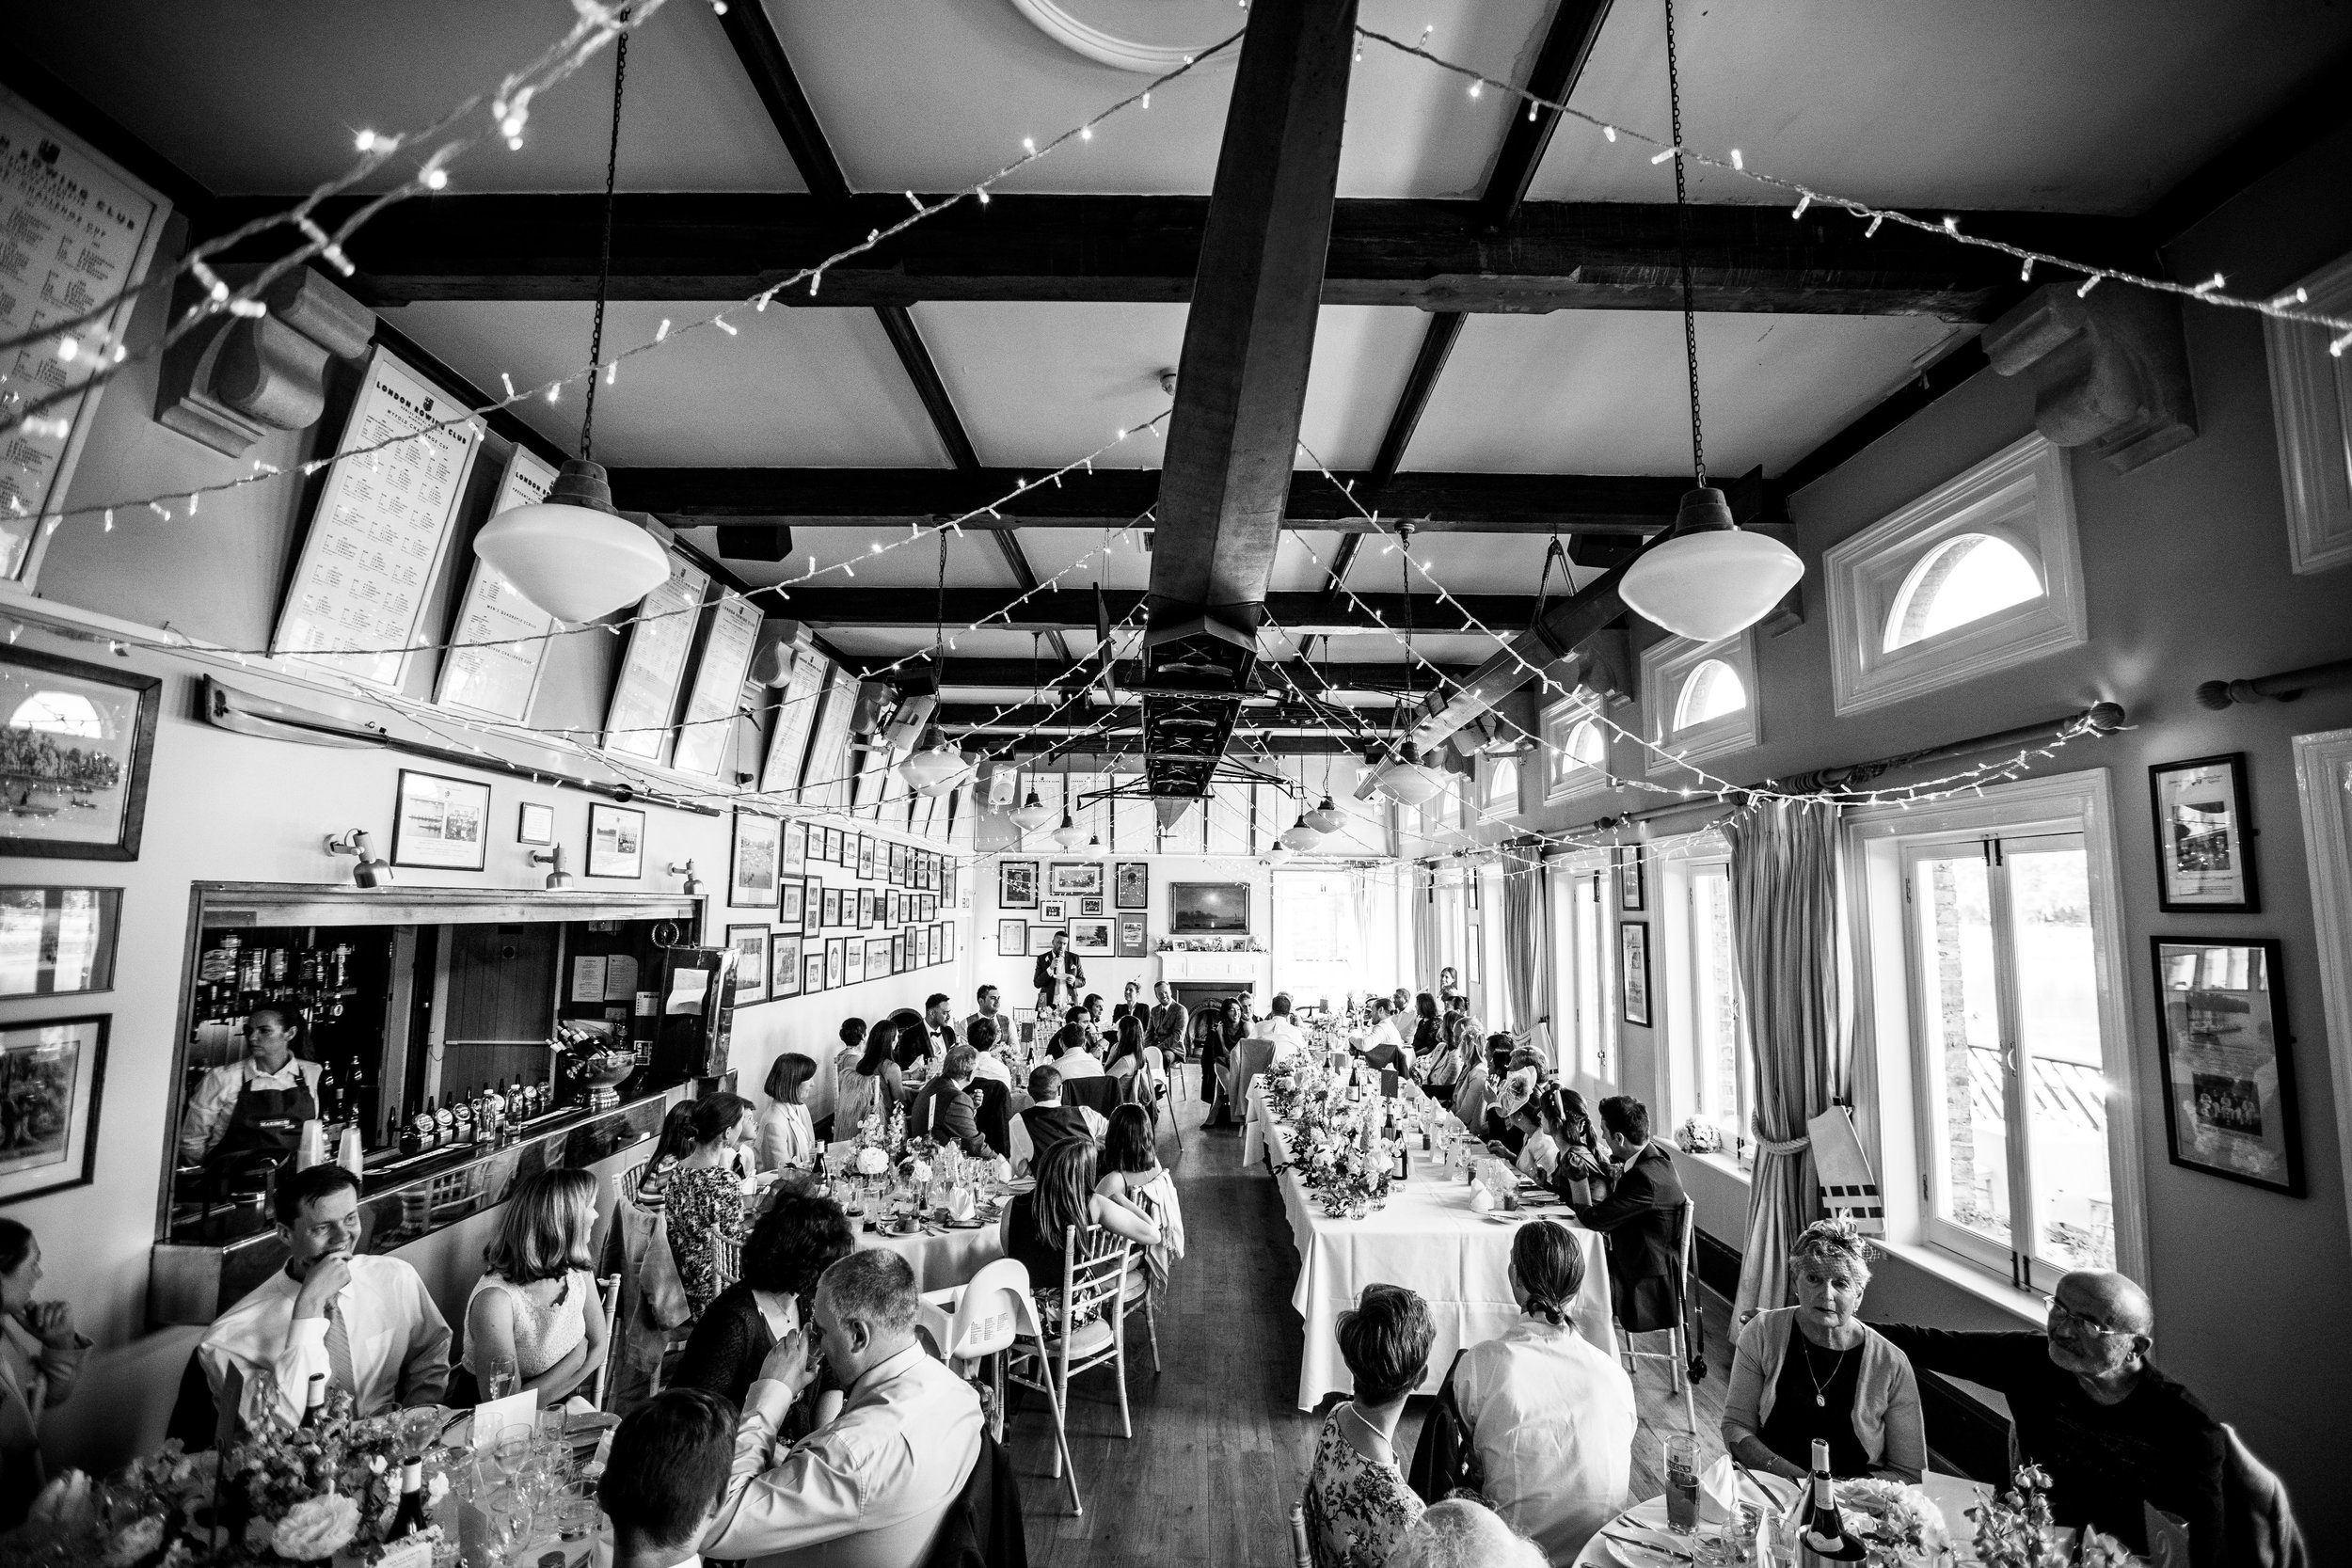 Putney-rowing-club-london-wedding-videography-photography-31